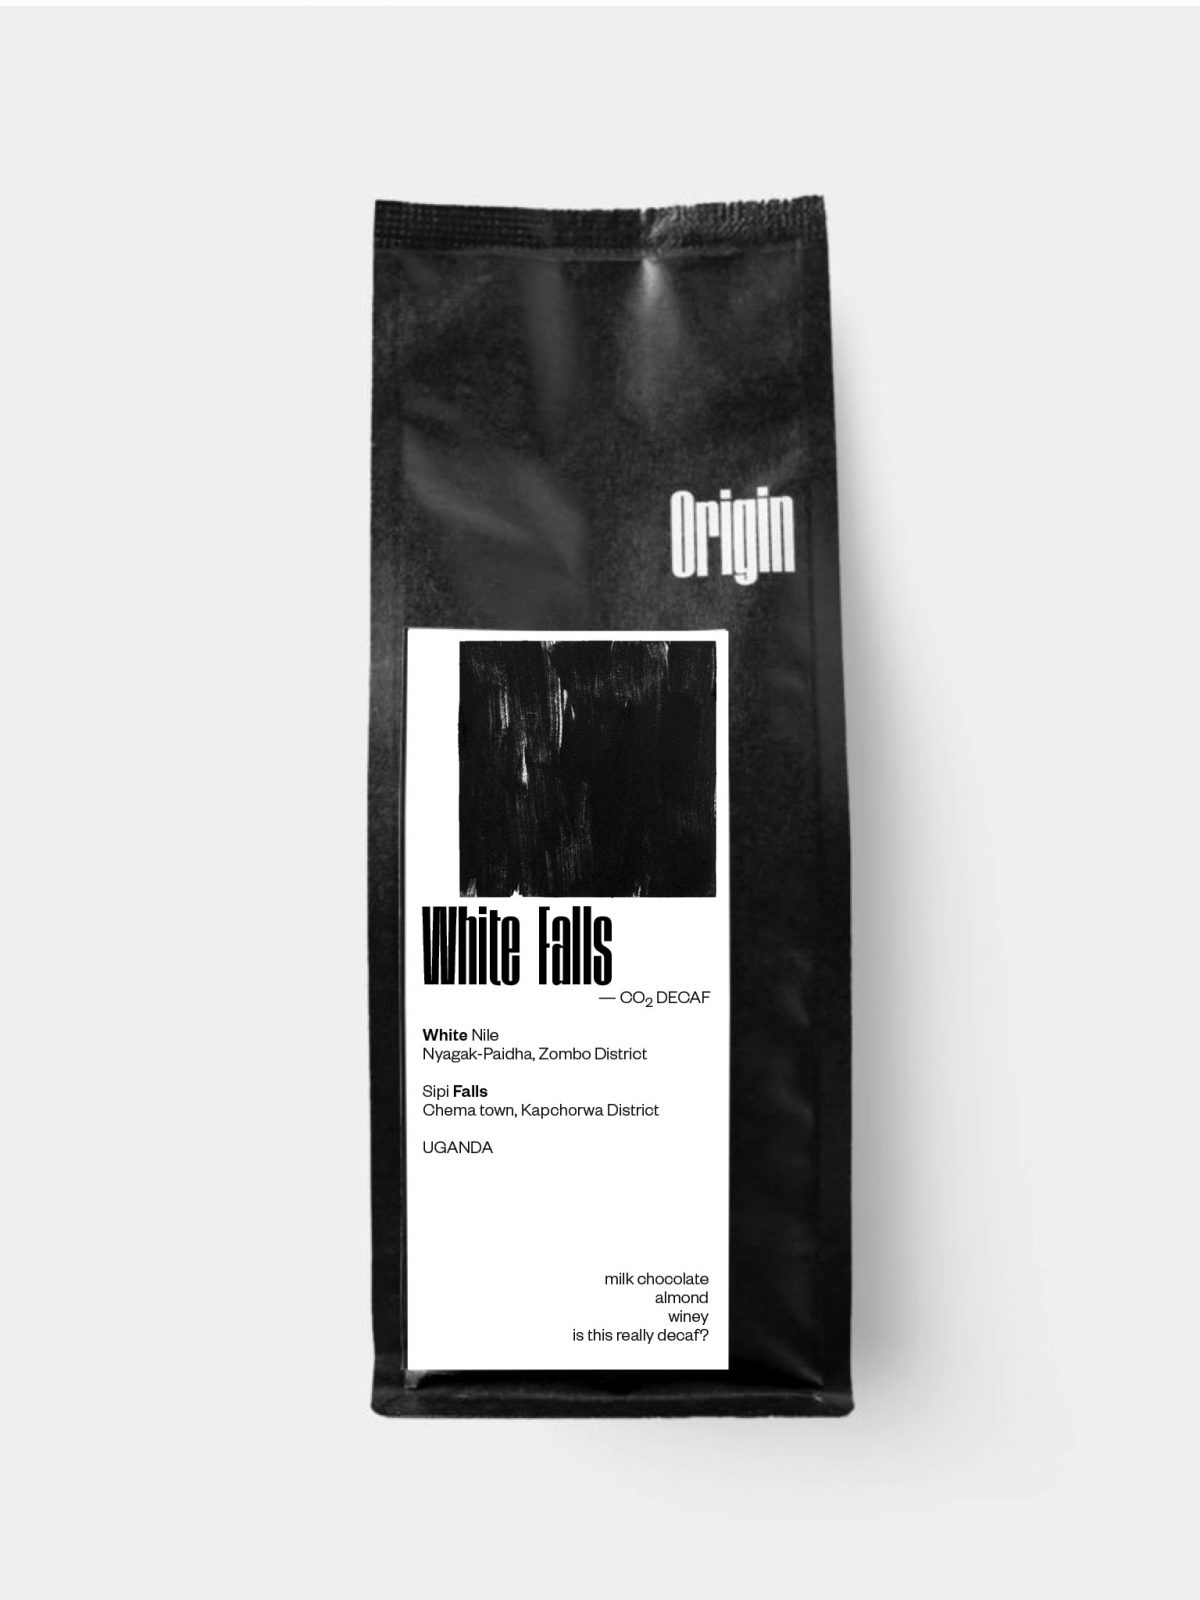 Uganda White Falls Decaf - on the 250g bag bkgd